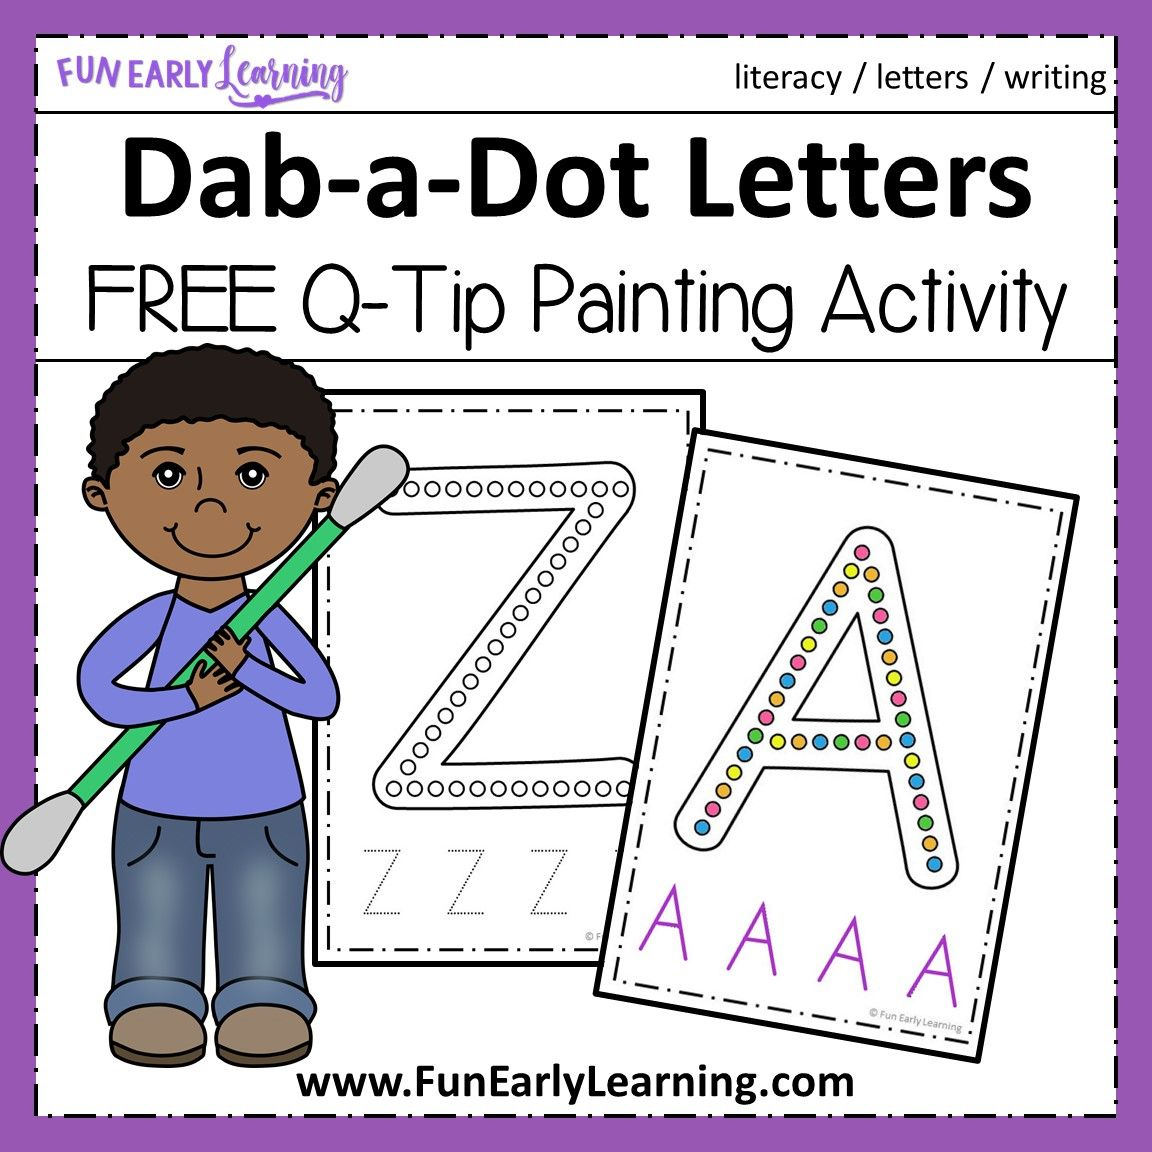 Dab A Dot Letters Q Tip Painting Fun Free Printable Preschool Activities Alphabet Activities Preschool Alphabet Preschool [ 1152 x 1152 Pixel ]